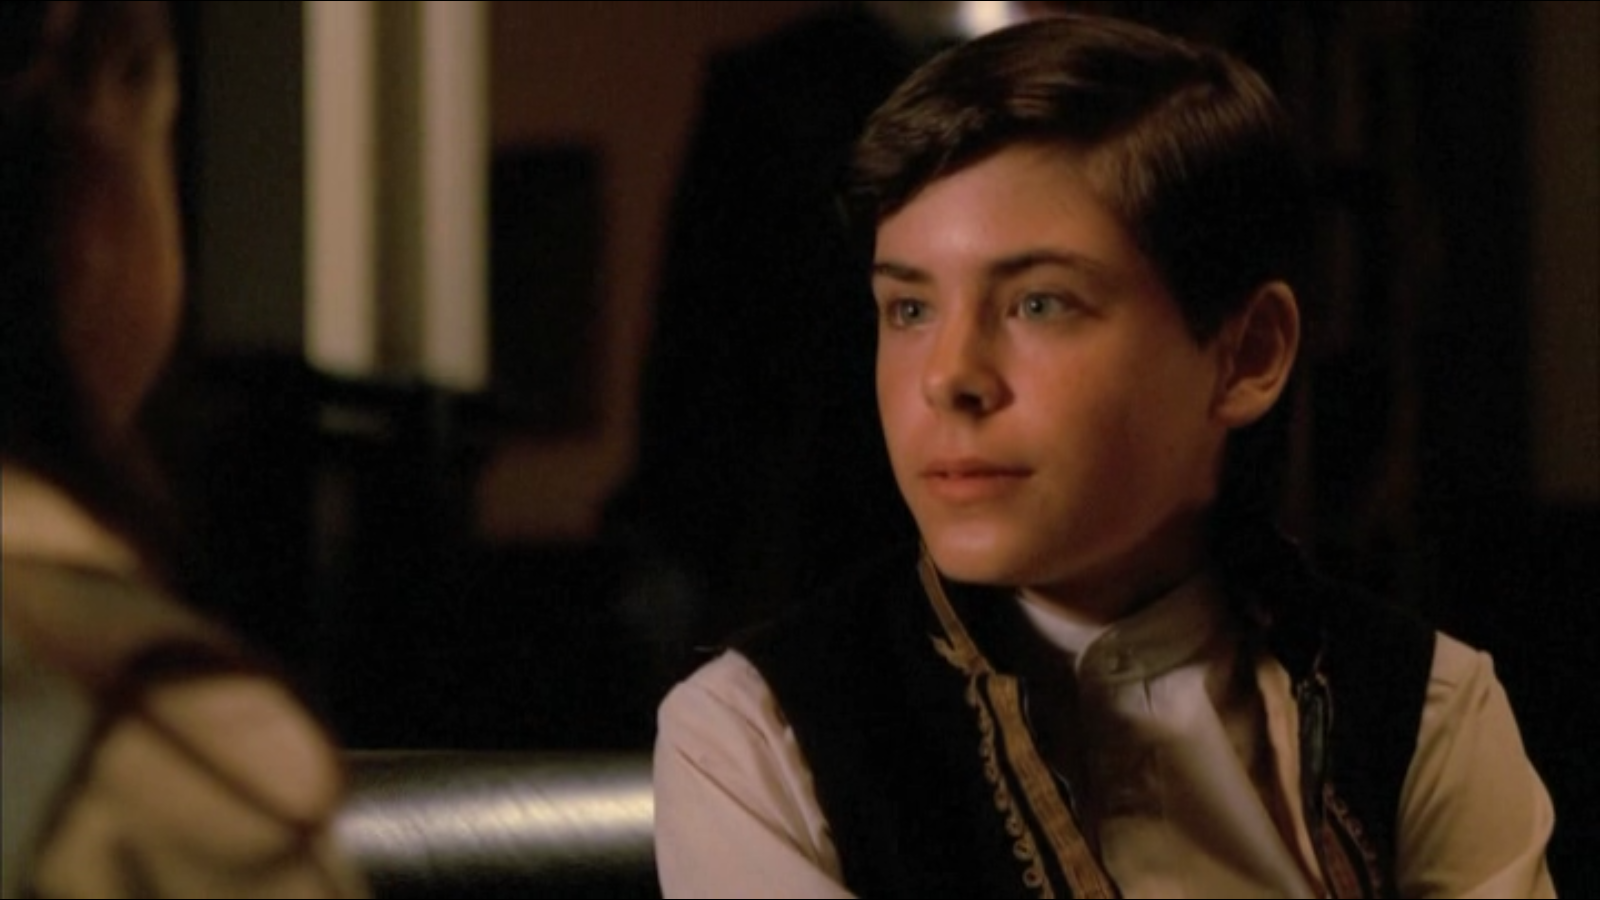 firefly safe | of Firefly (Zac Efron as Young Simon Tam in